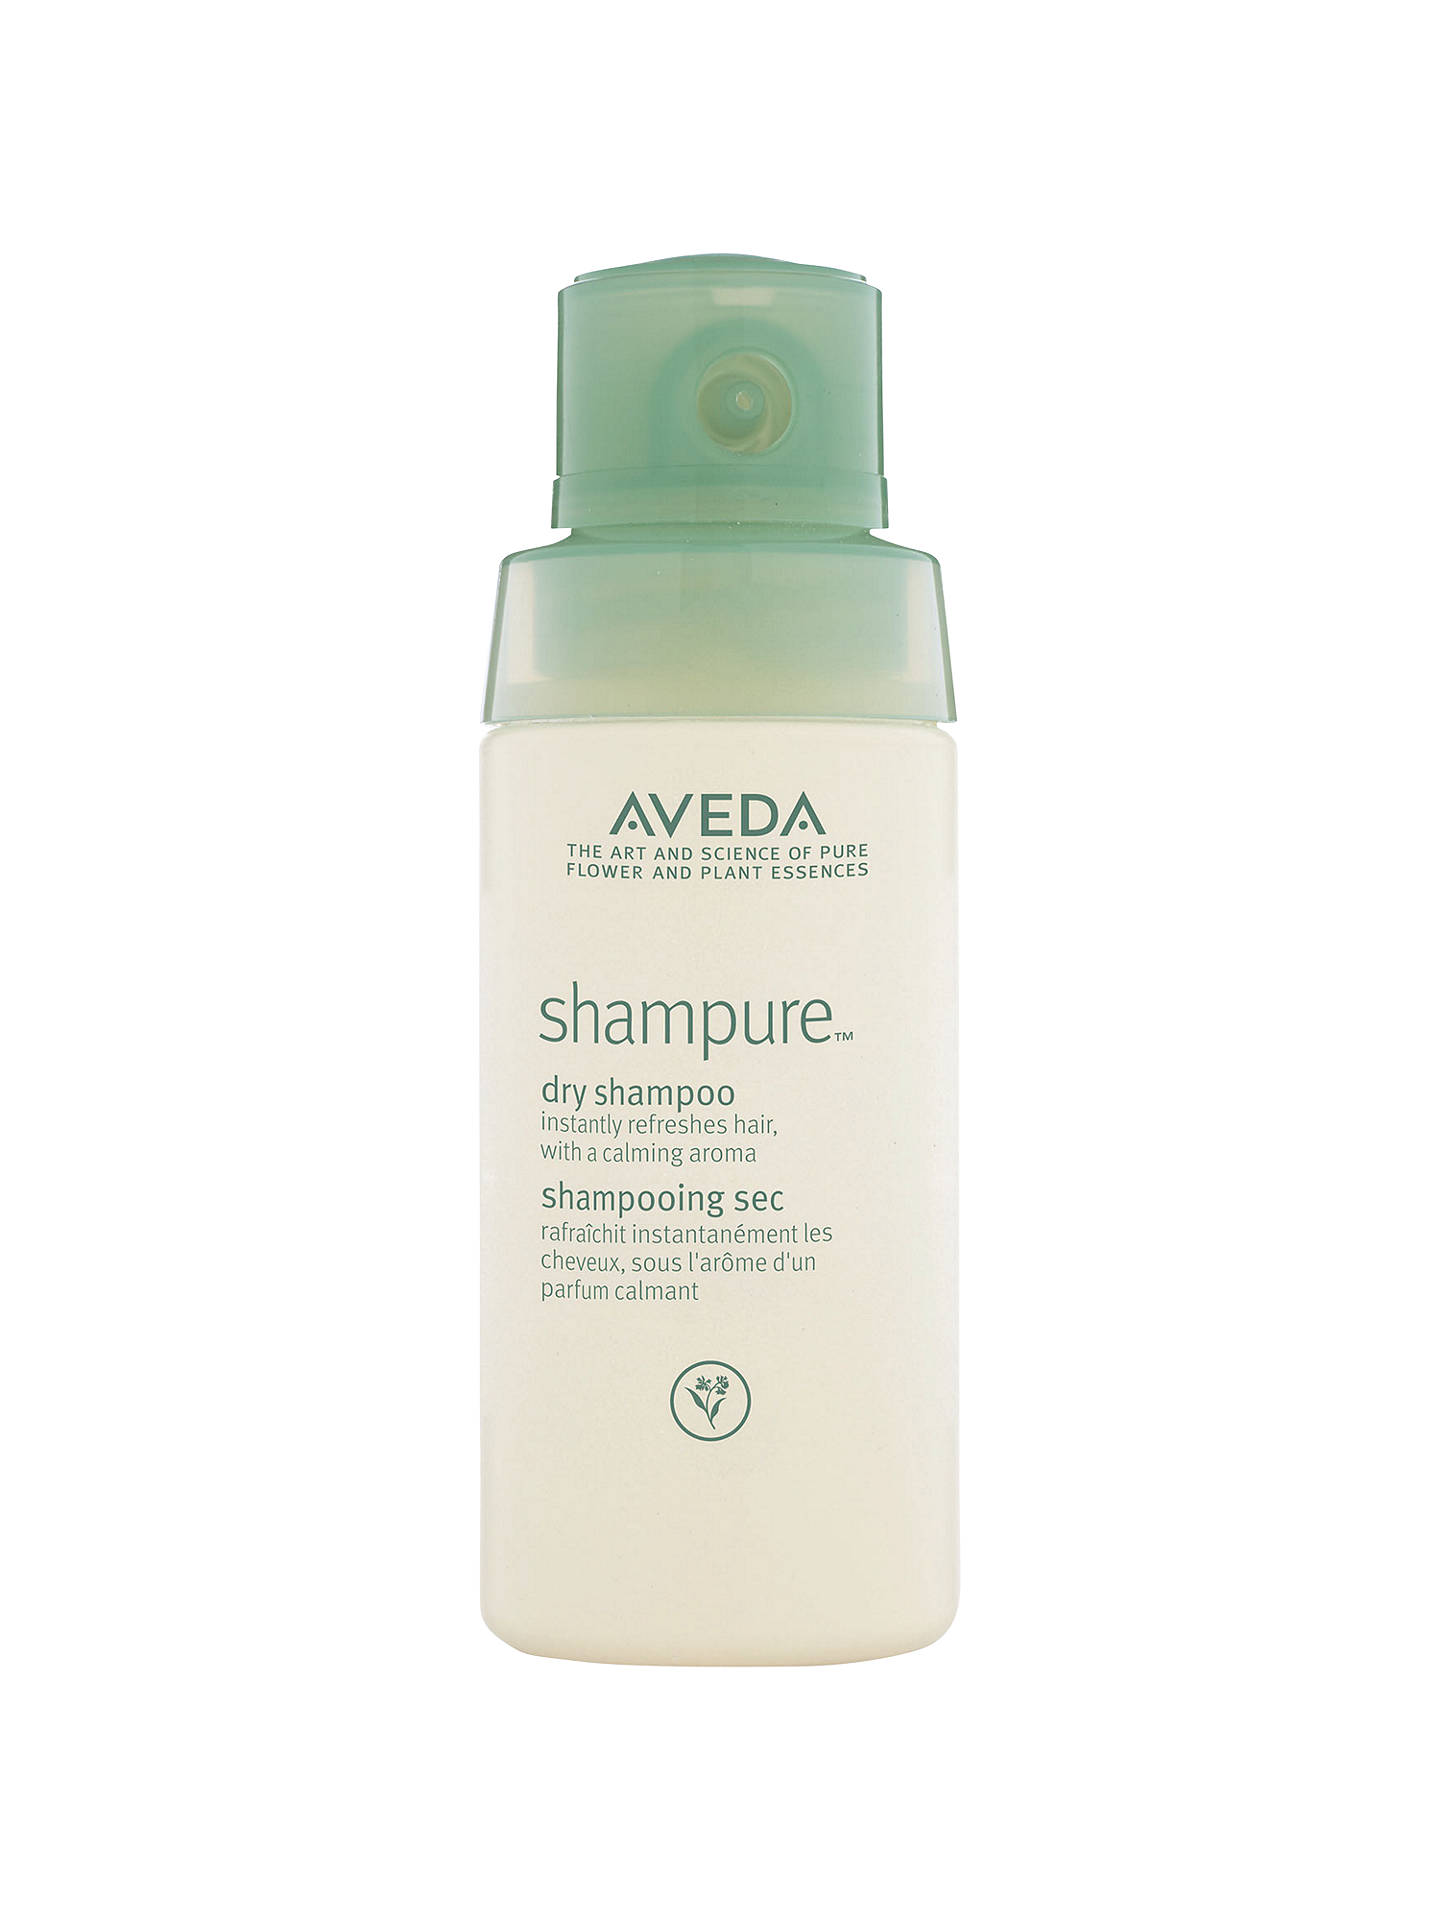 Buy Aveda Shampure Dry Shampoo, 60ml Online at johnlewis.com